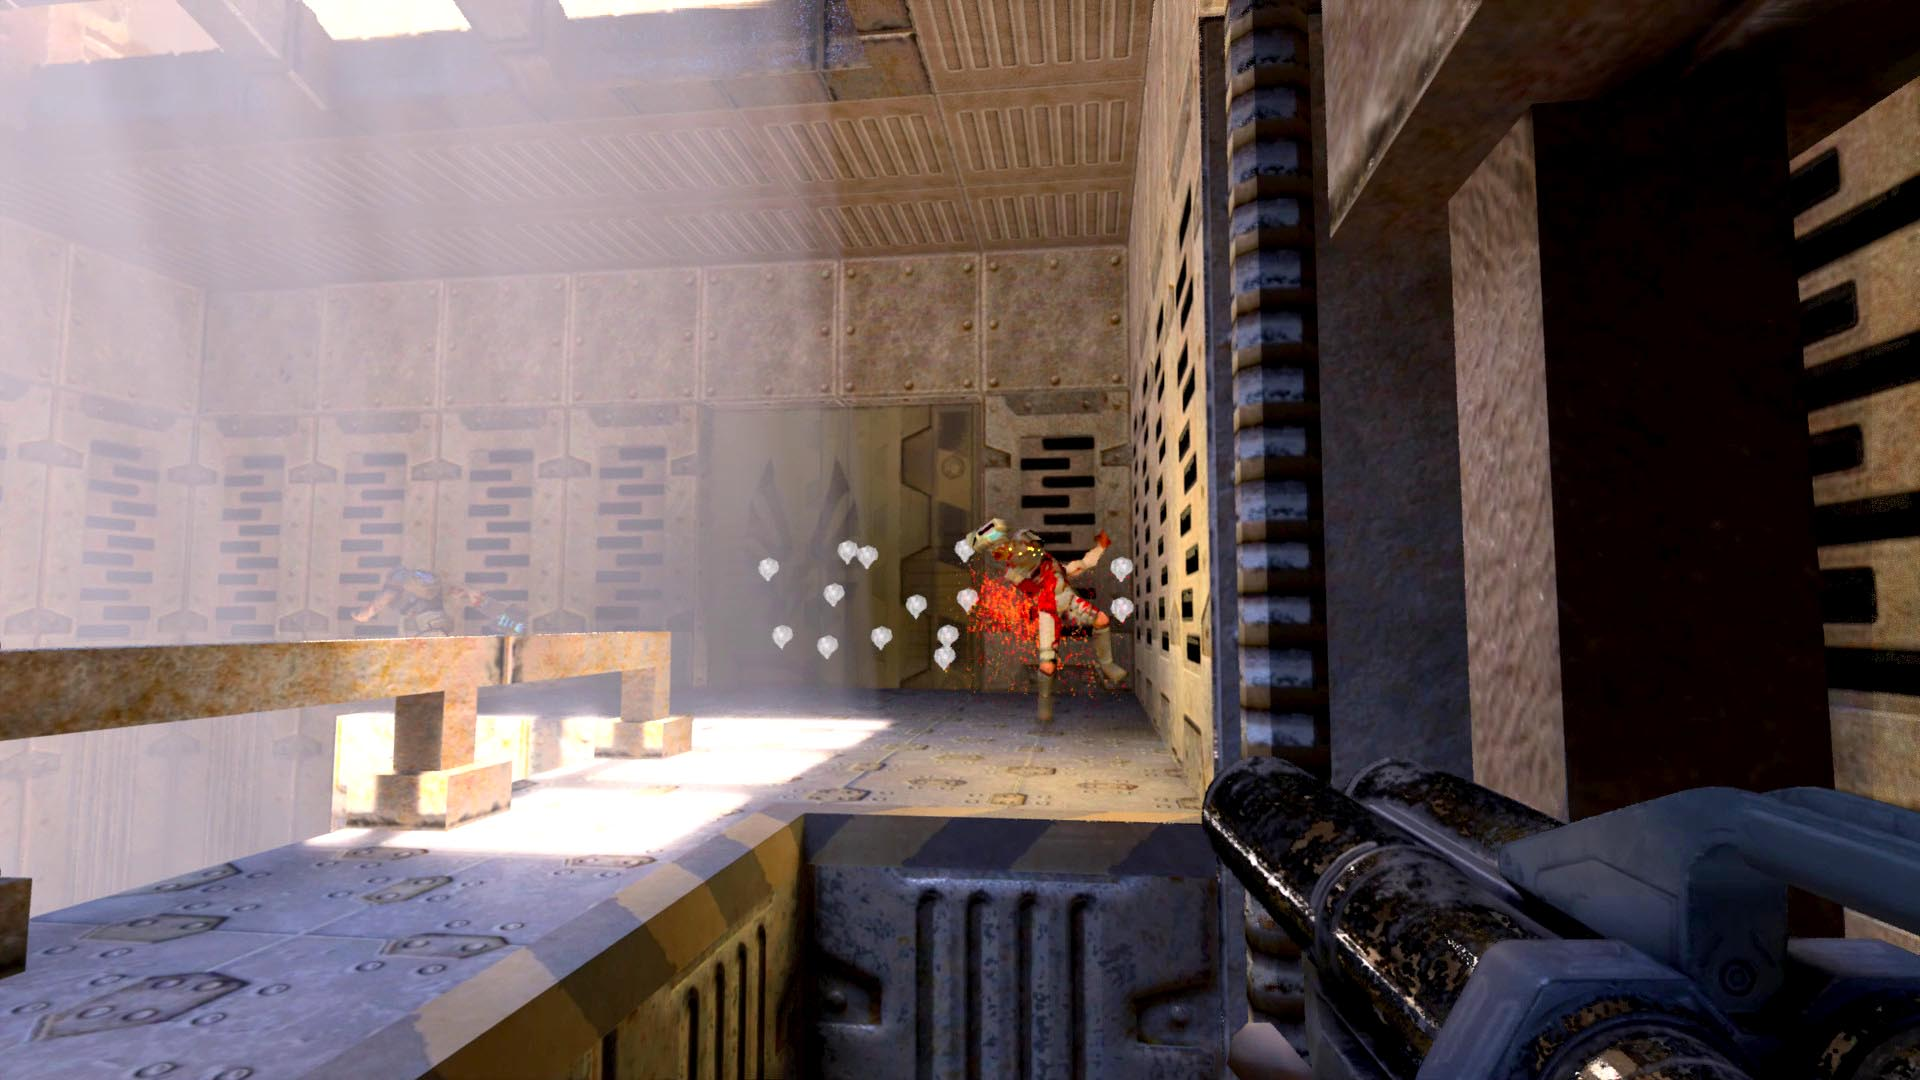 Quake II RTX is now available to download for free | PCGamesN